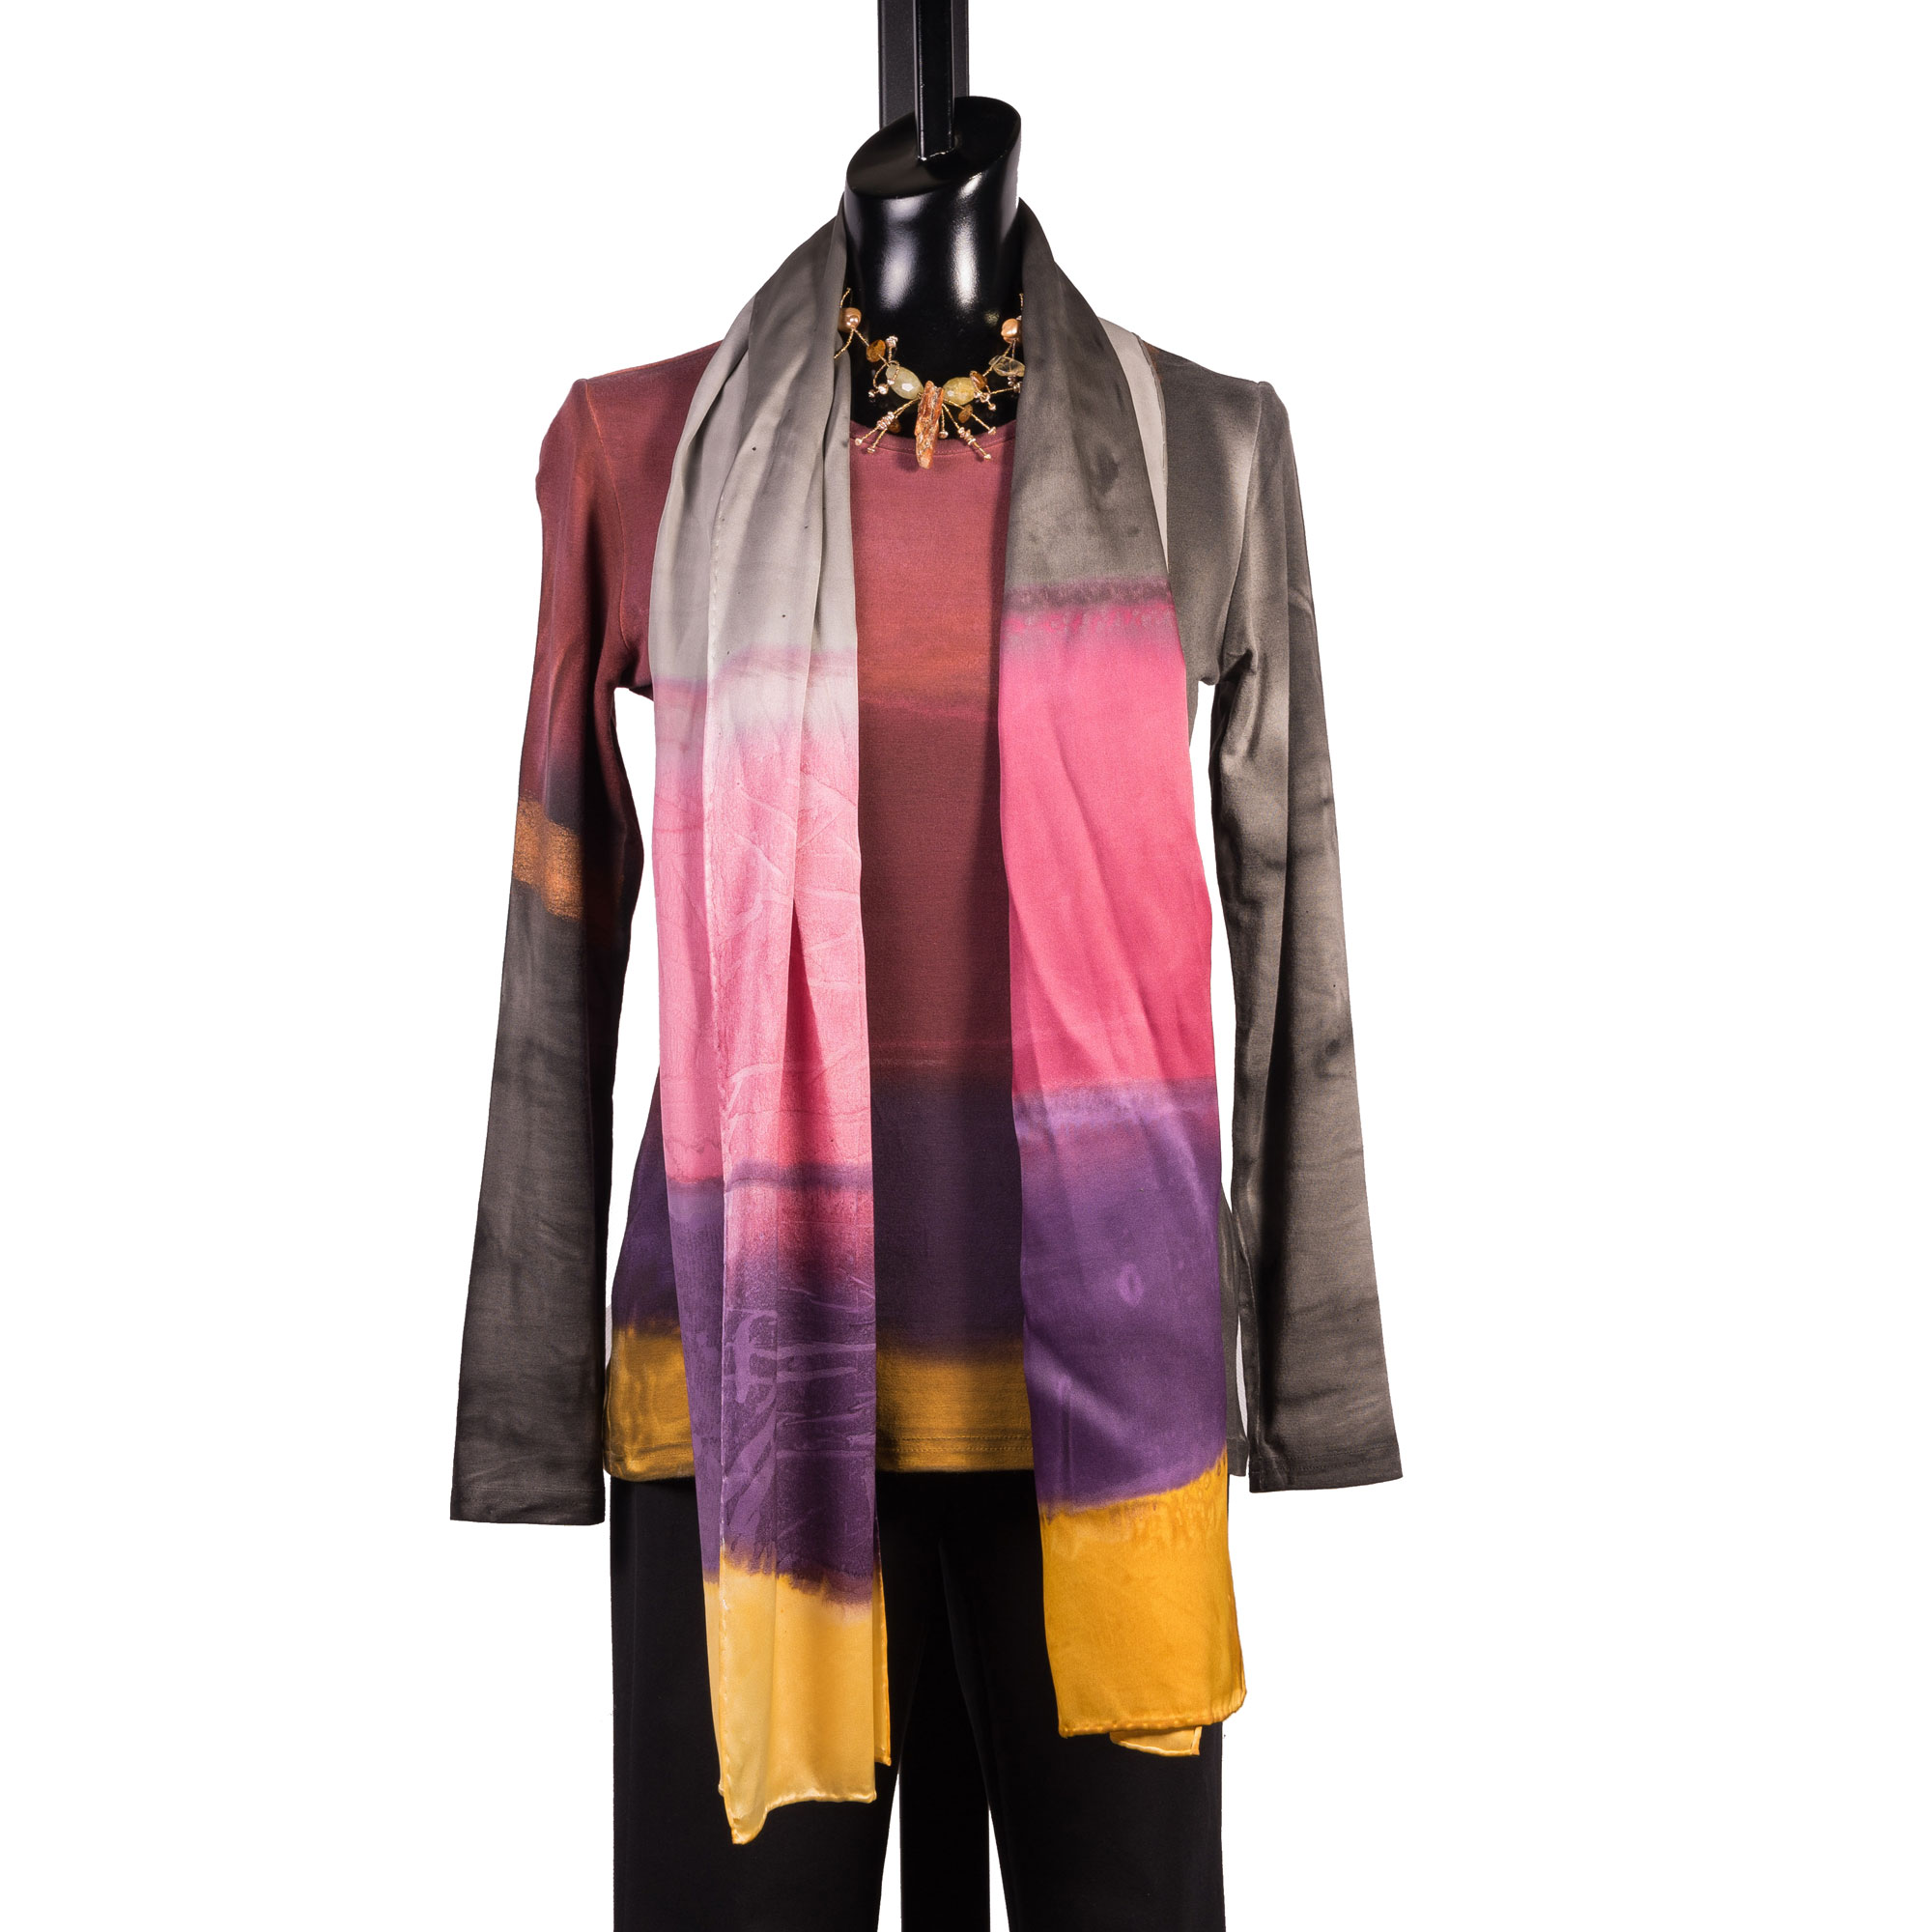 4-melarosa-wearable-art-scarf.jpg